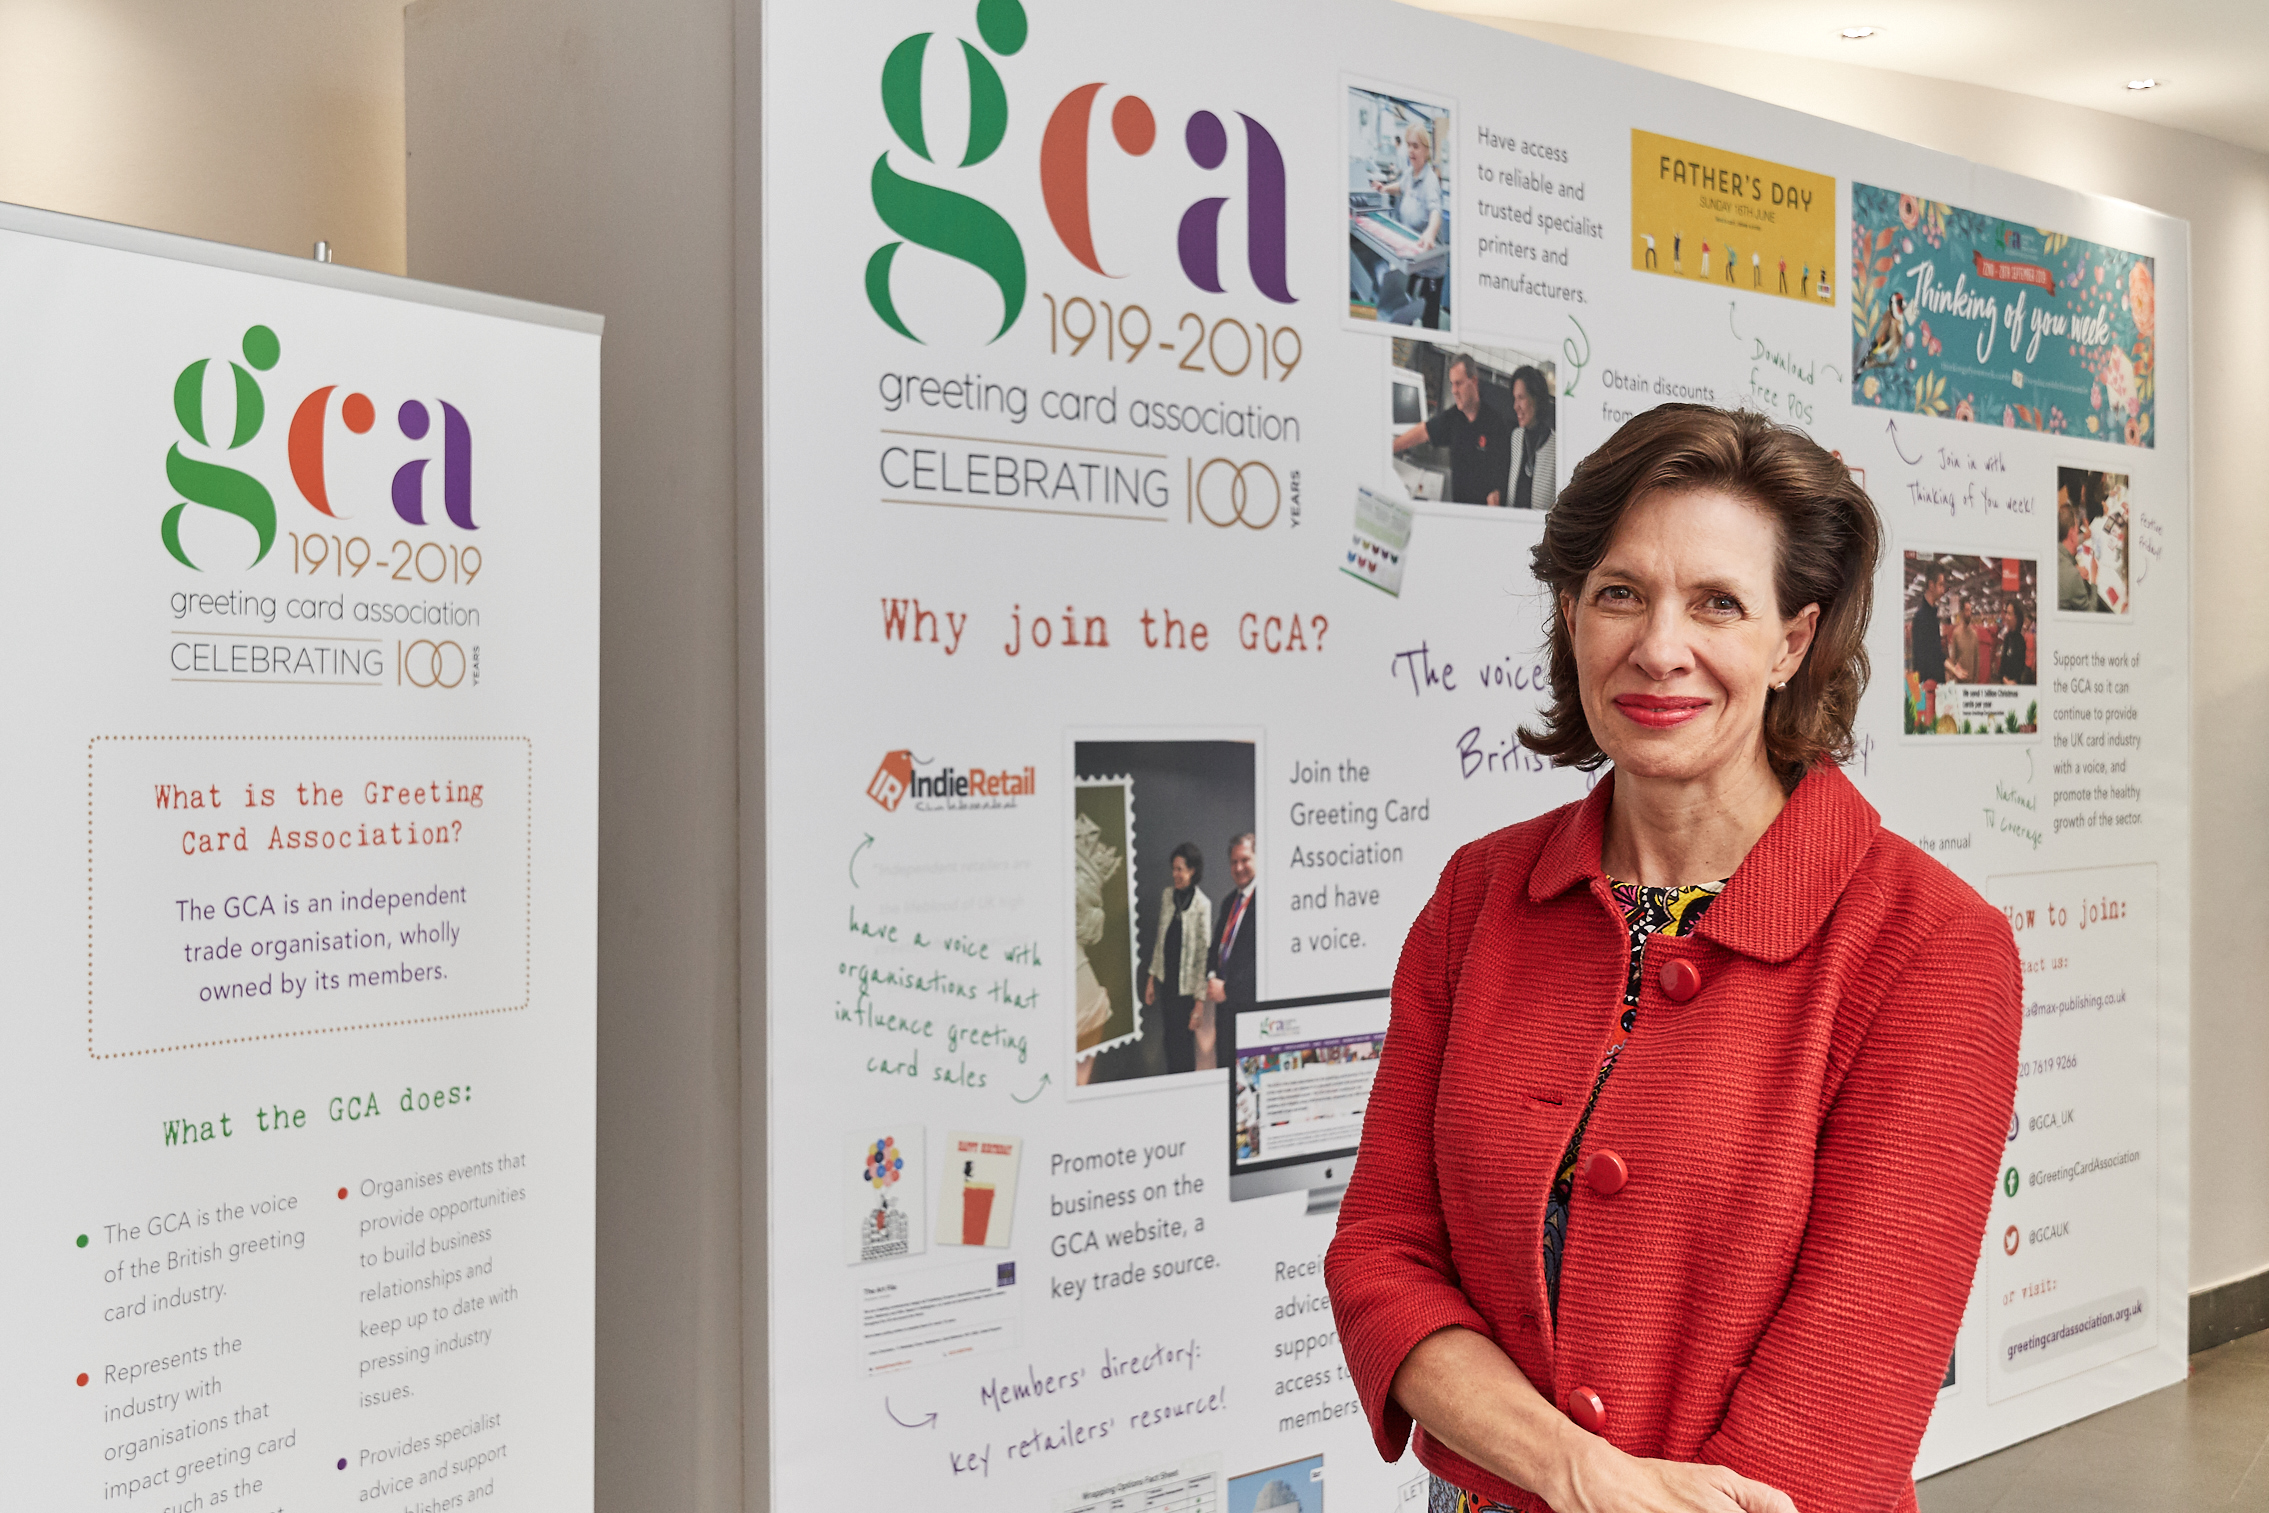 Above: Being driven by Amanda Fergusson, ceo of the GCA, the #cardtokeep Instagram initiative is part of the Association's 100th anniversary activities.